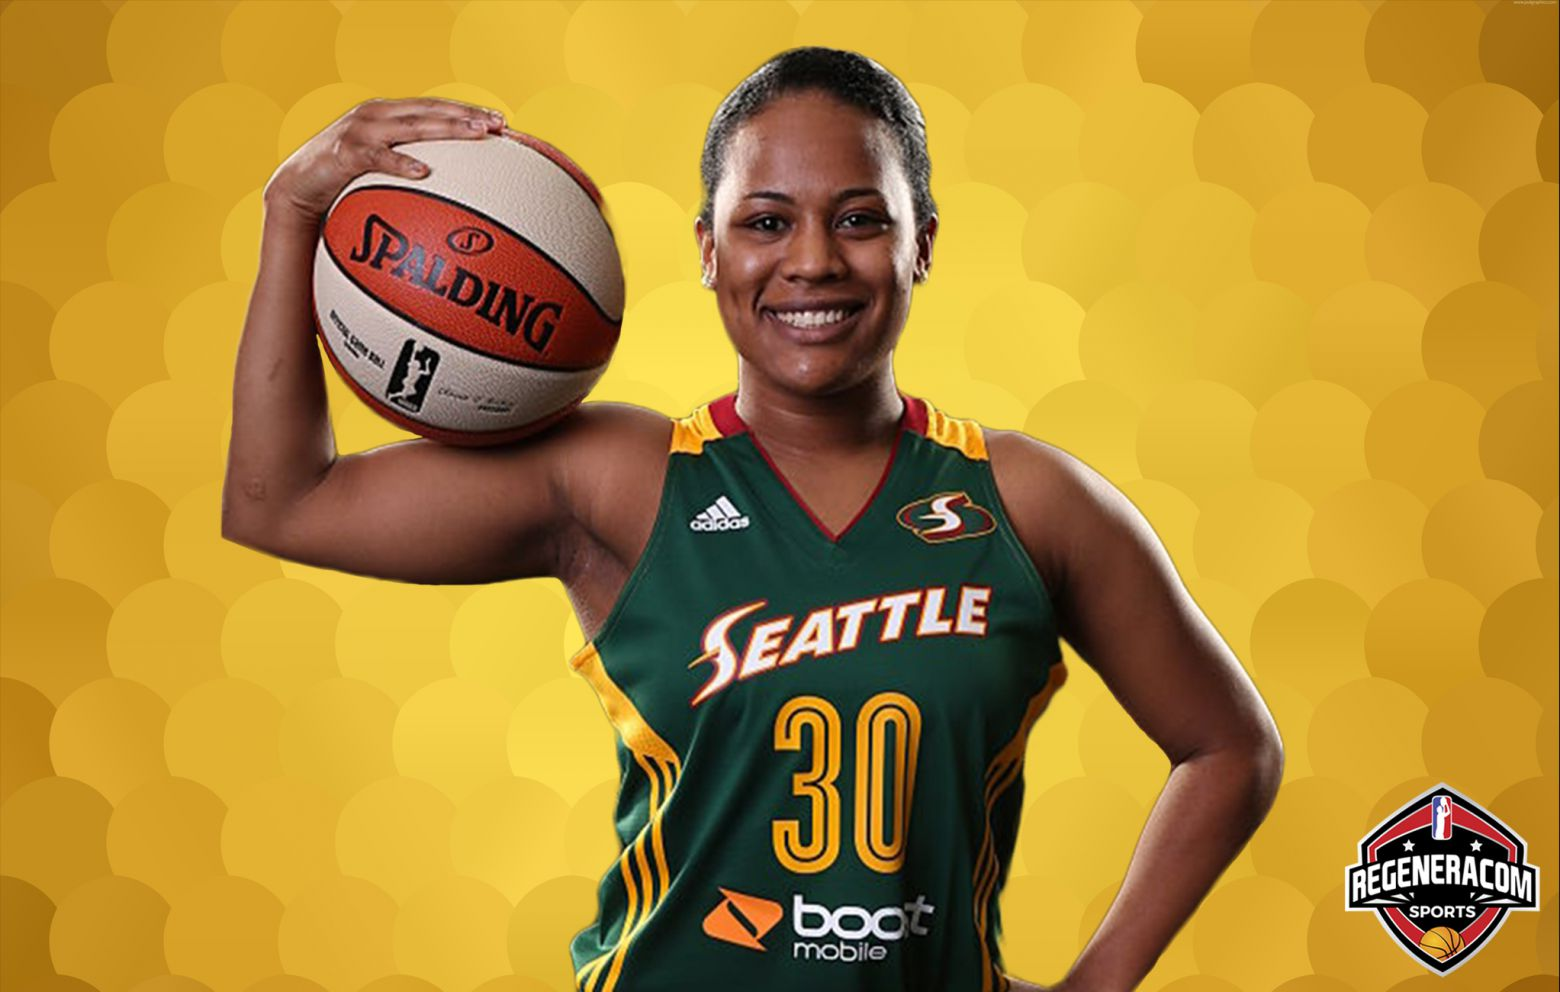 JAZMINE DAVIS has signed with Regeneracom Sports